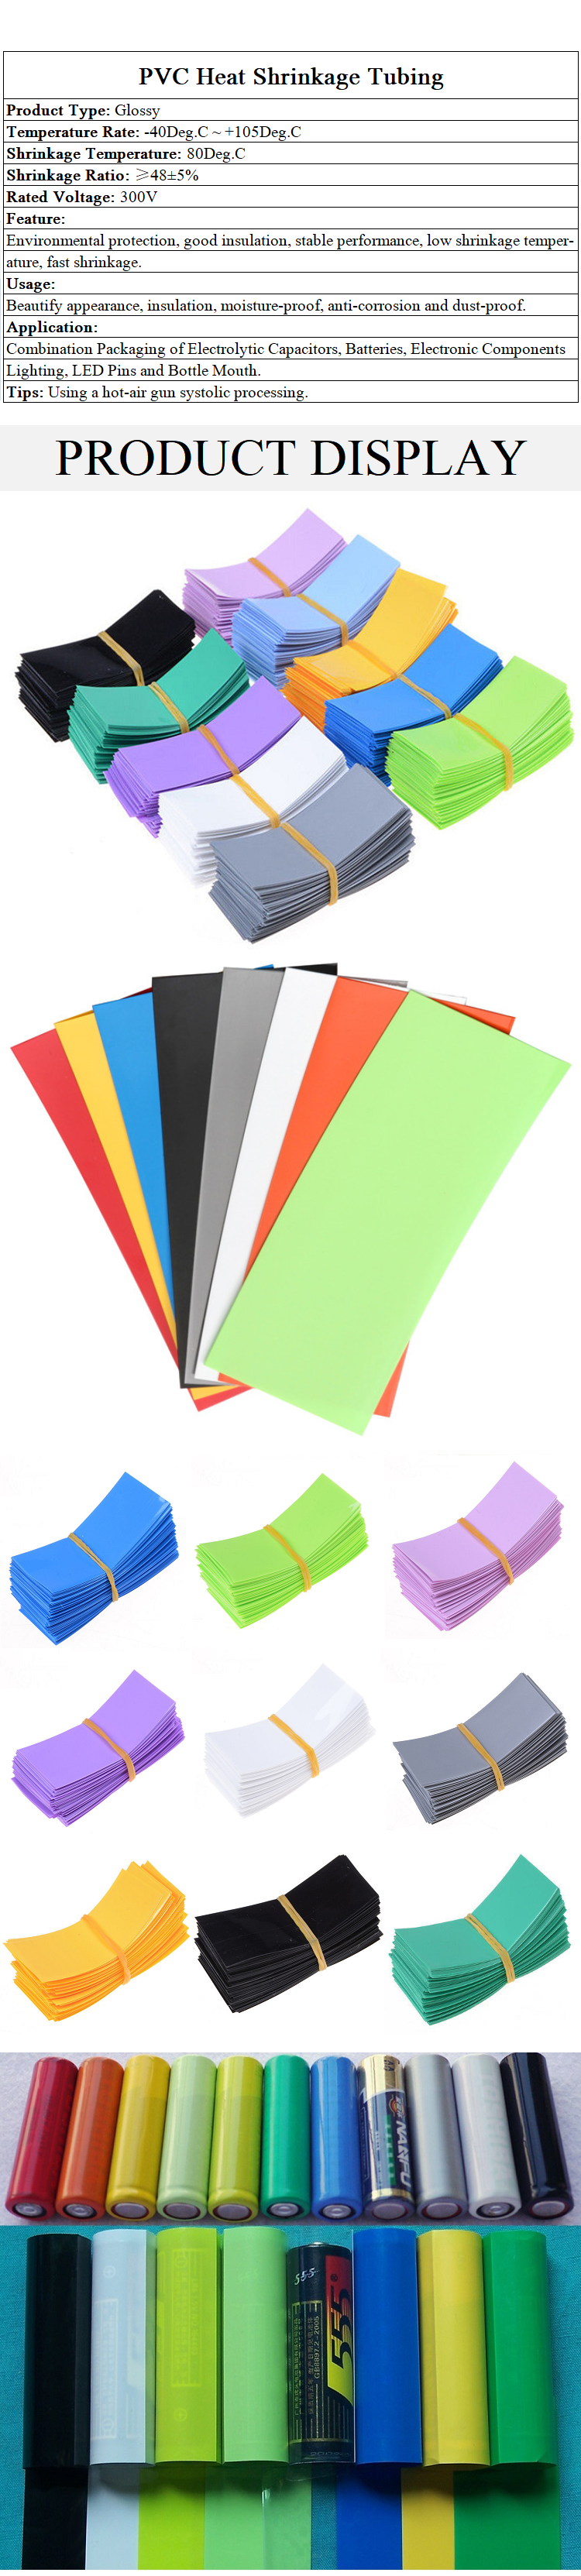 PVC Heat Shrink Tubing Wrap AA Battery Sleeving Width 23mm Length 53mm 15-Color